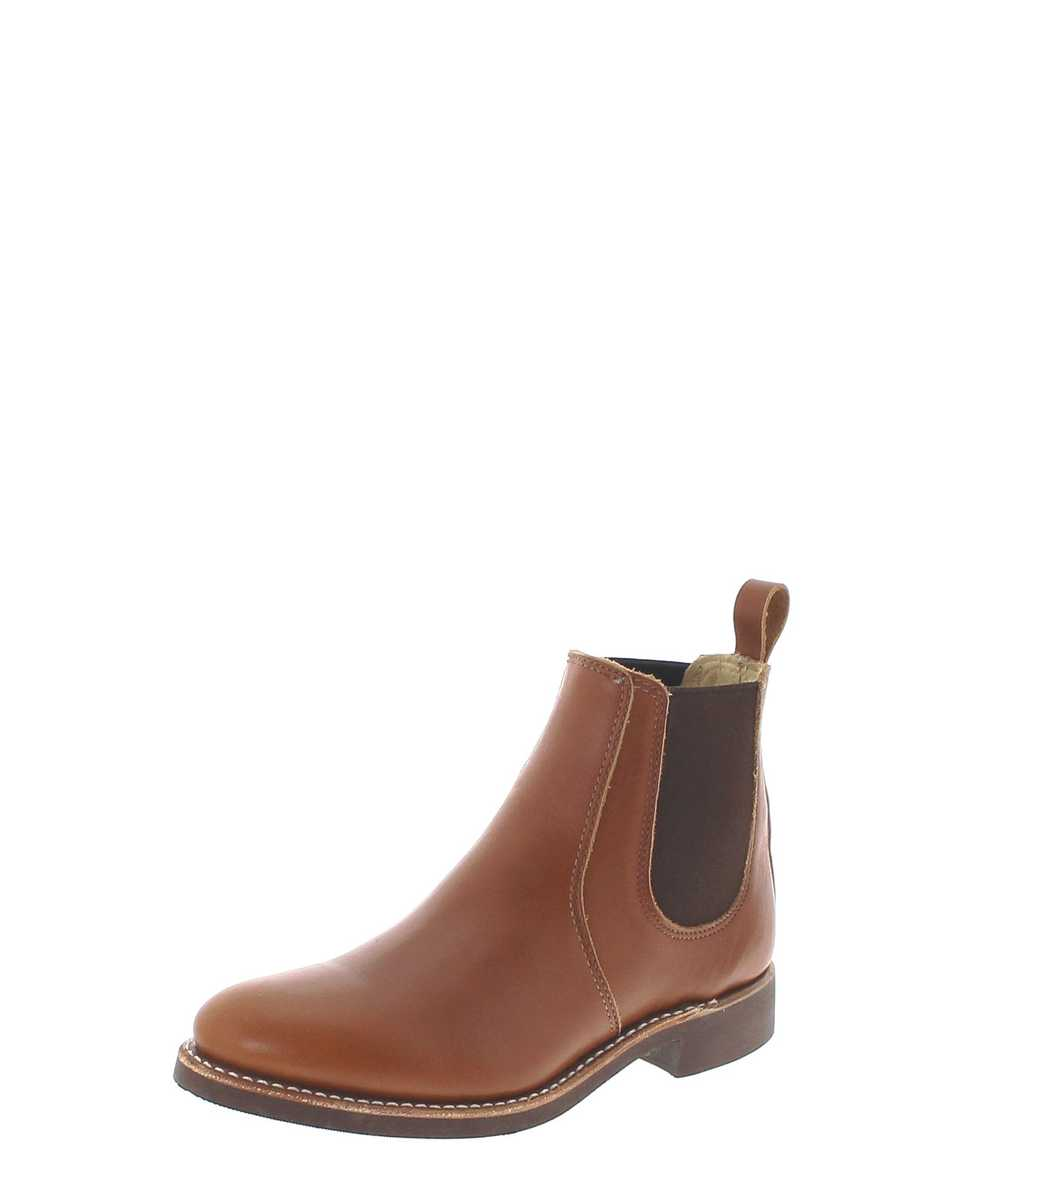 Red Wing Shoes 3456 CHELSEA Pecan Damen Chelsea Boots - braun